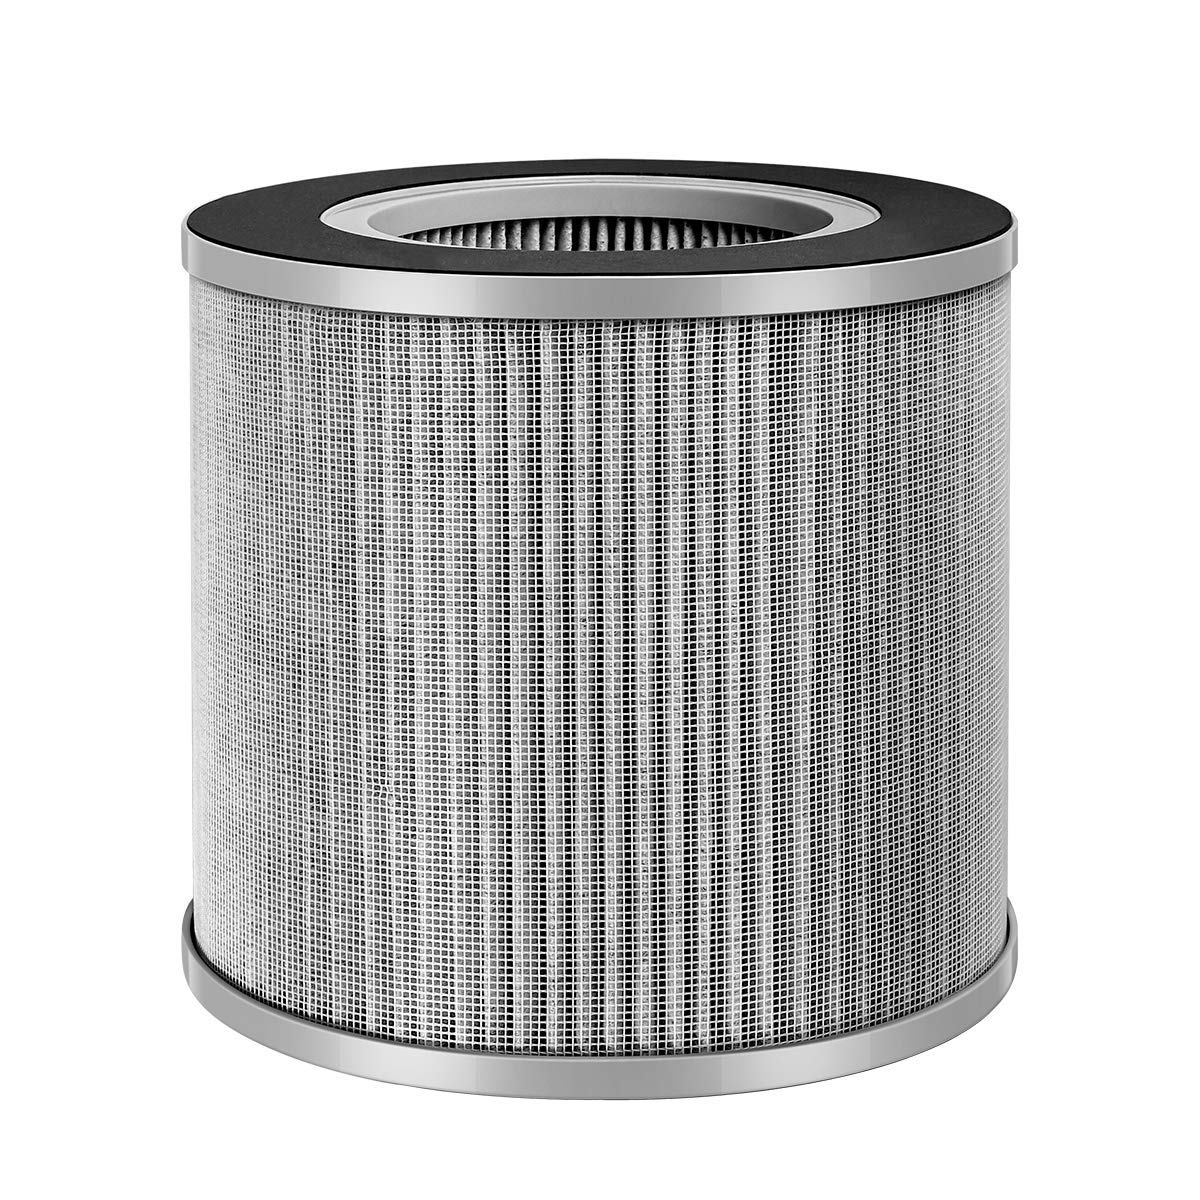 Homemaxs EPI236 Air Purifier Replacement Filter True HEPA Activated Carbon Filters Set- Upgraded